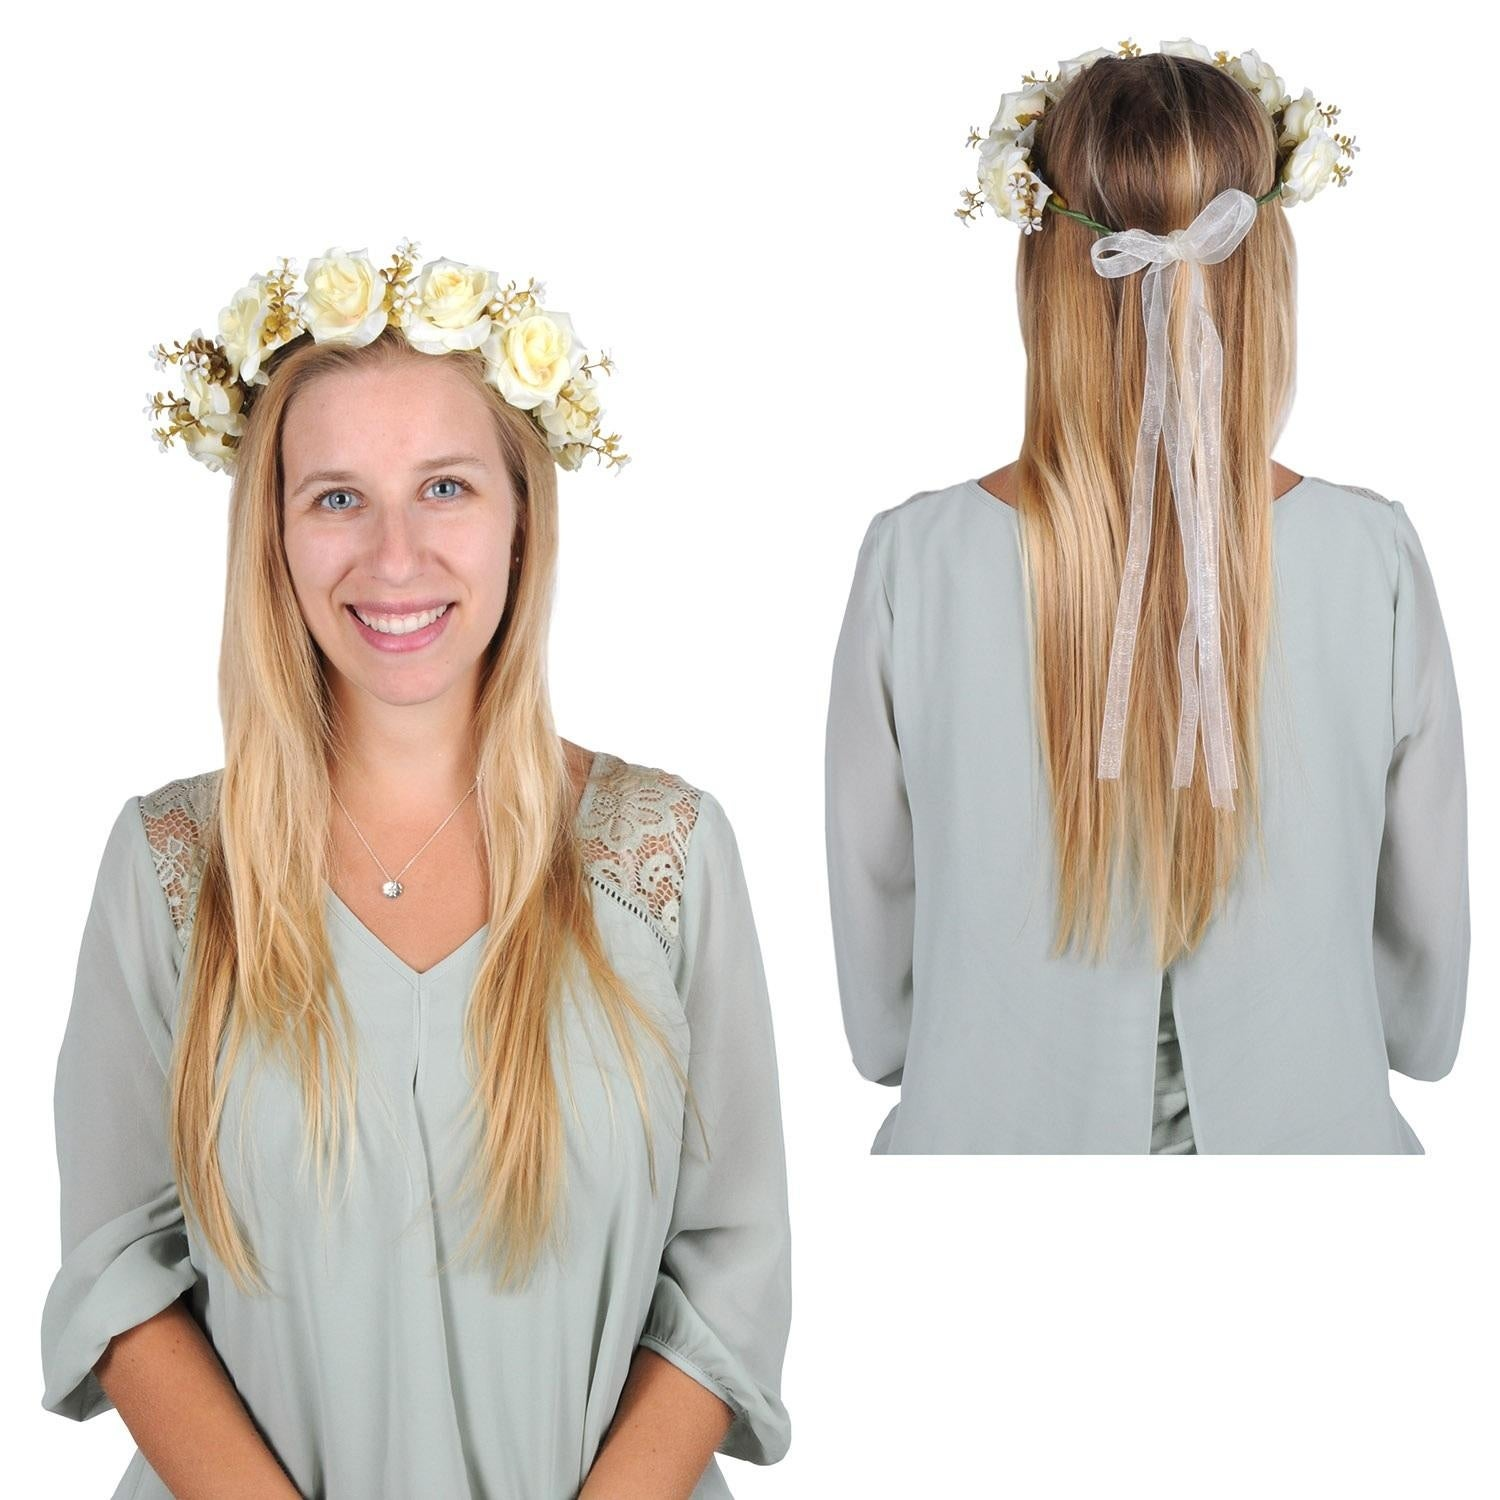 Club Pack Of 12 Springtime Wedding Adjustable White Floral Crown